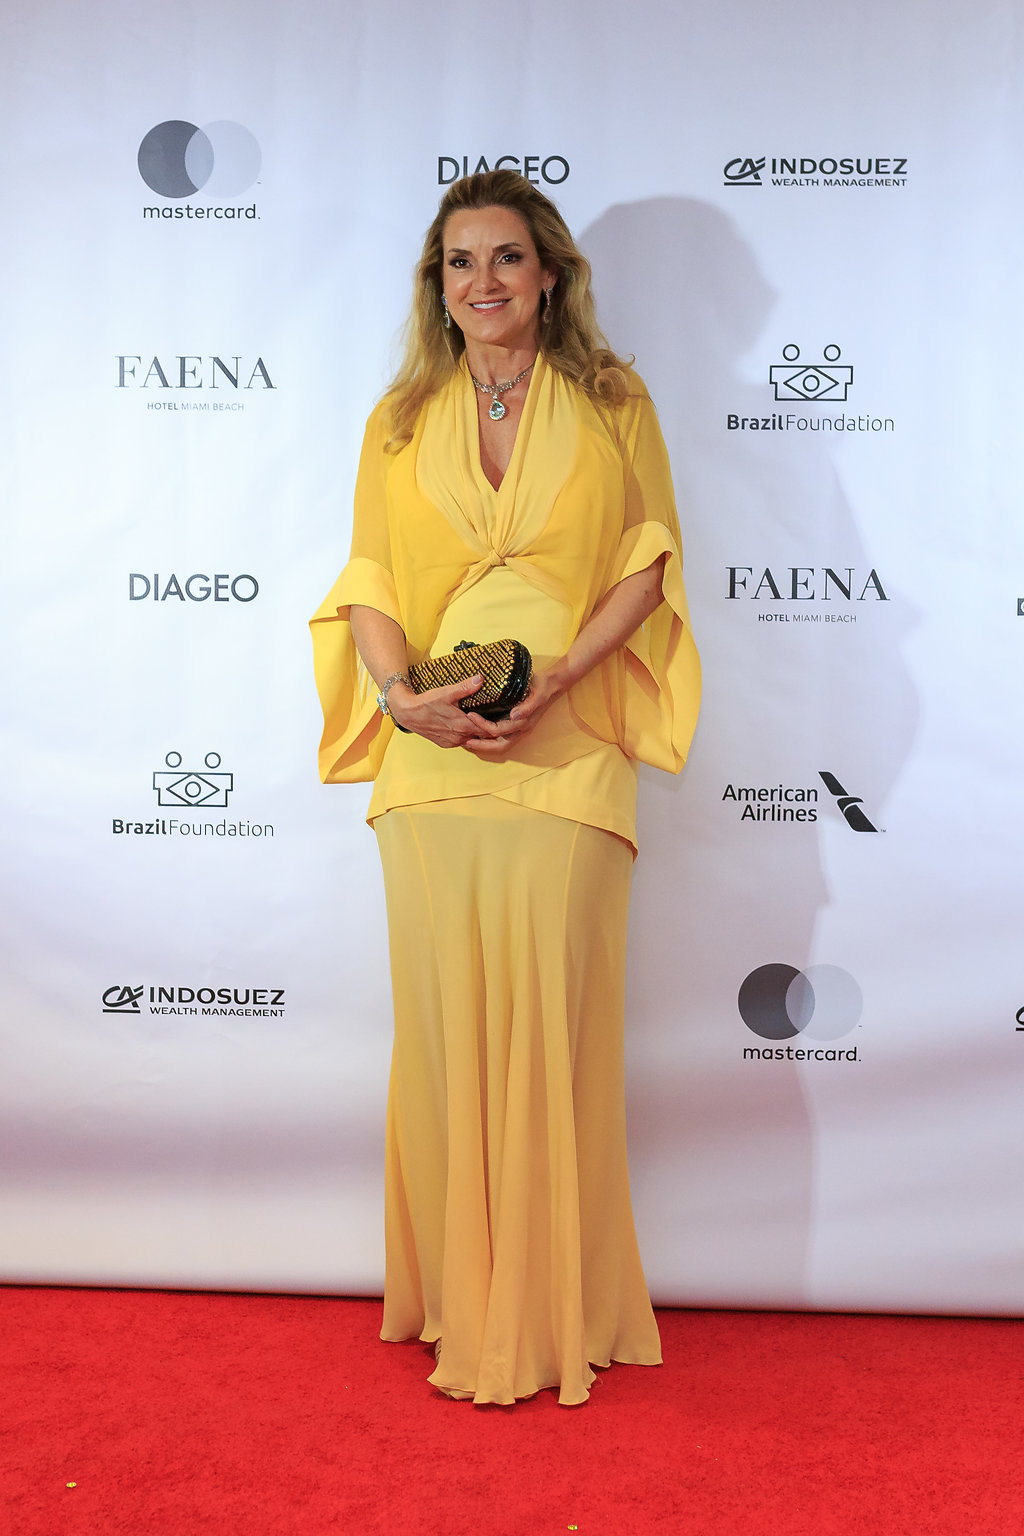 Virginia Bartolomeo BrazilFoundation VII Gala Miami Tropical Carnival Ball Philanthropy Filantropia